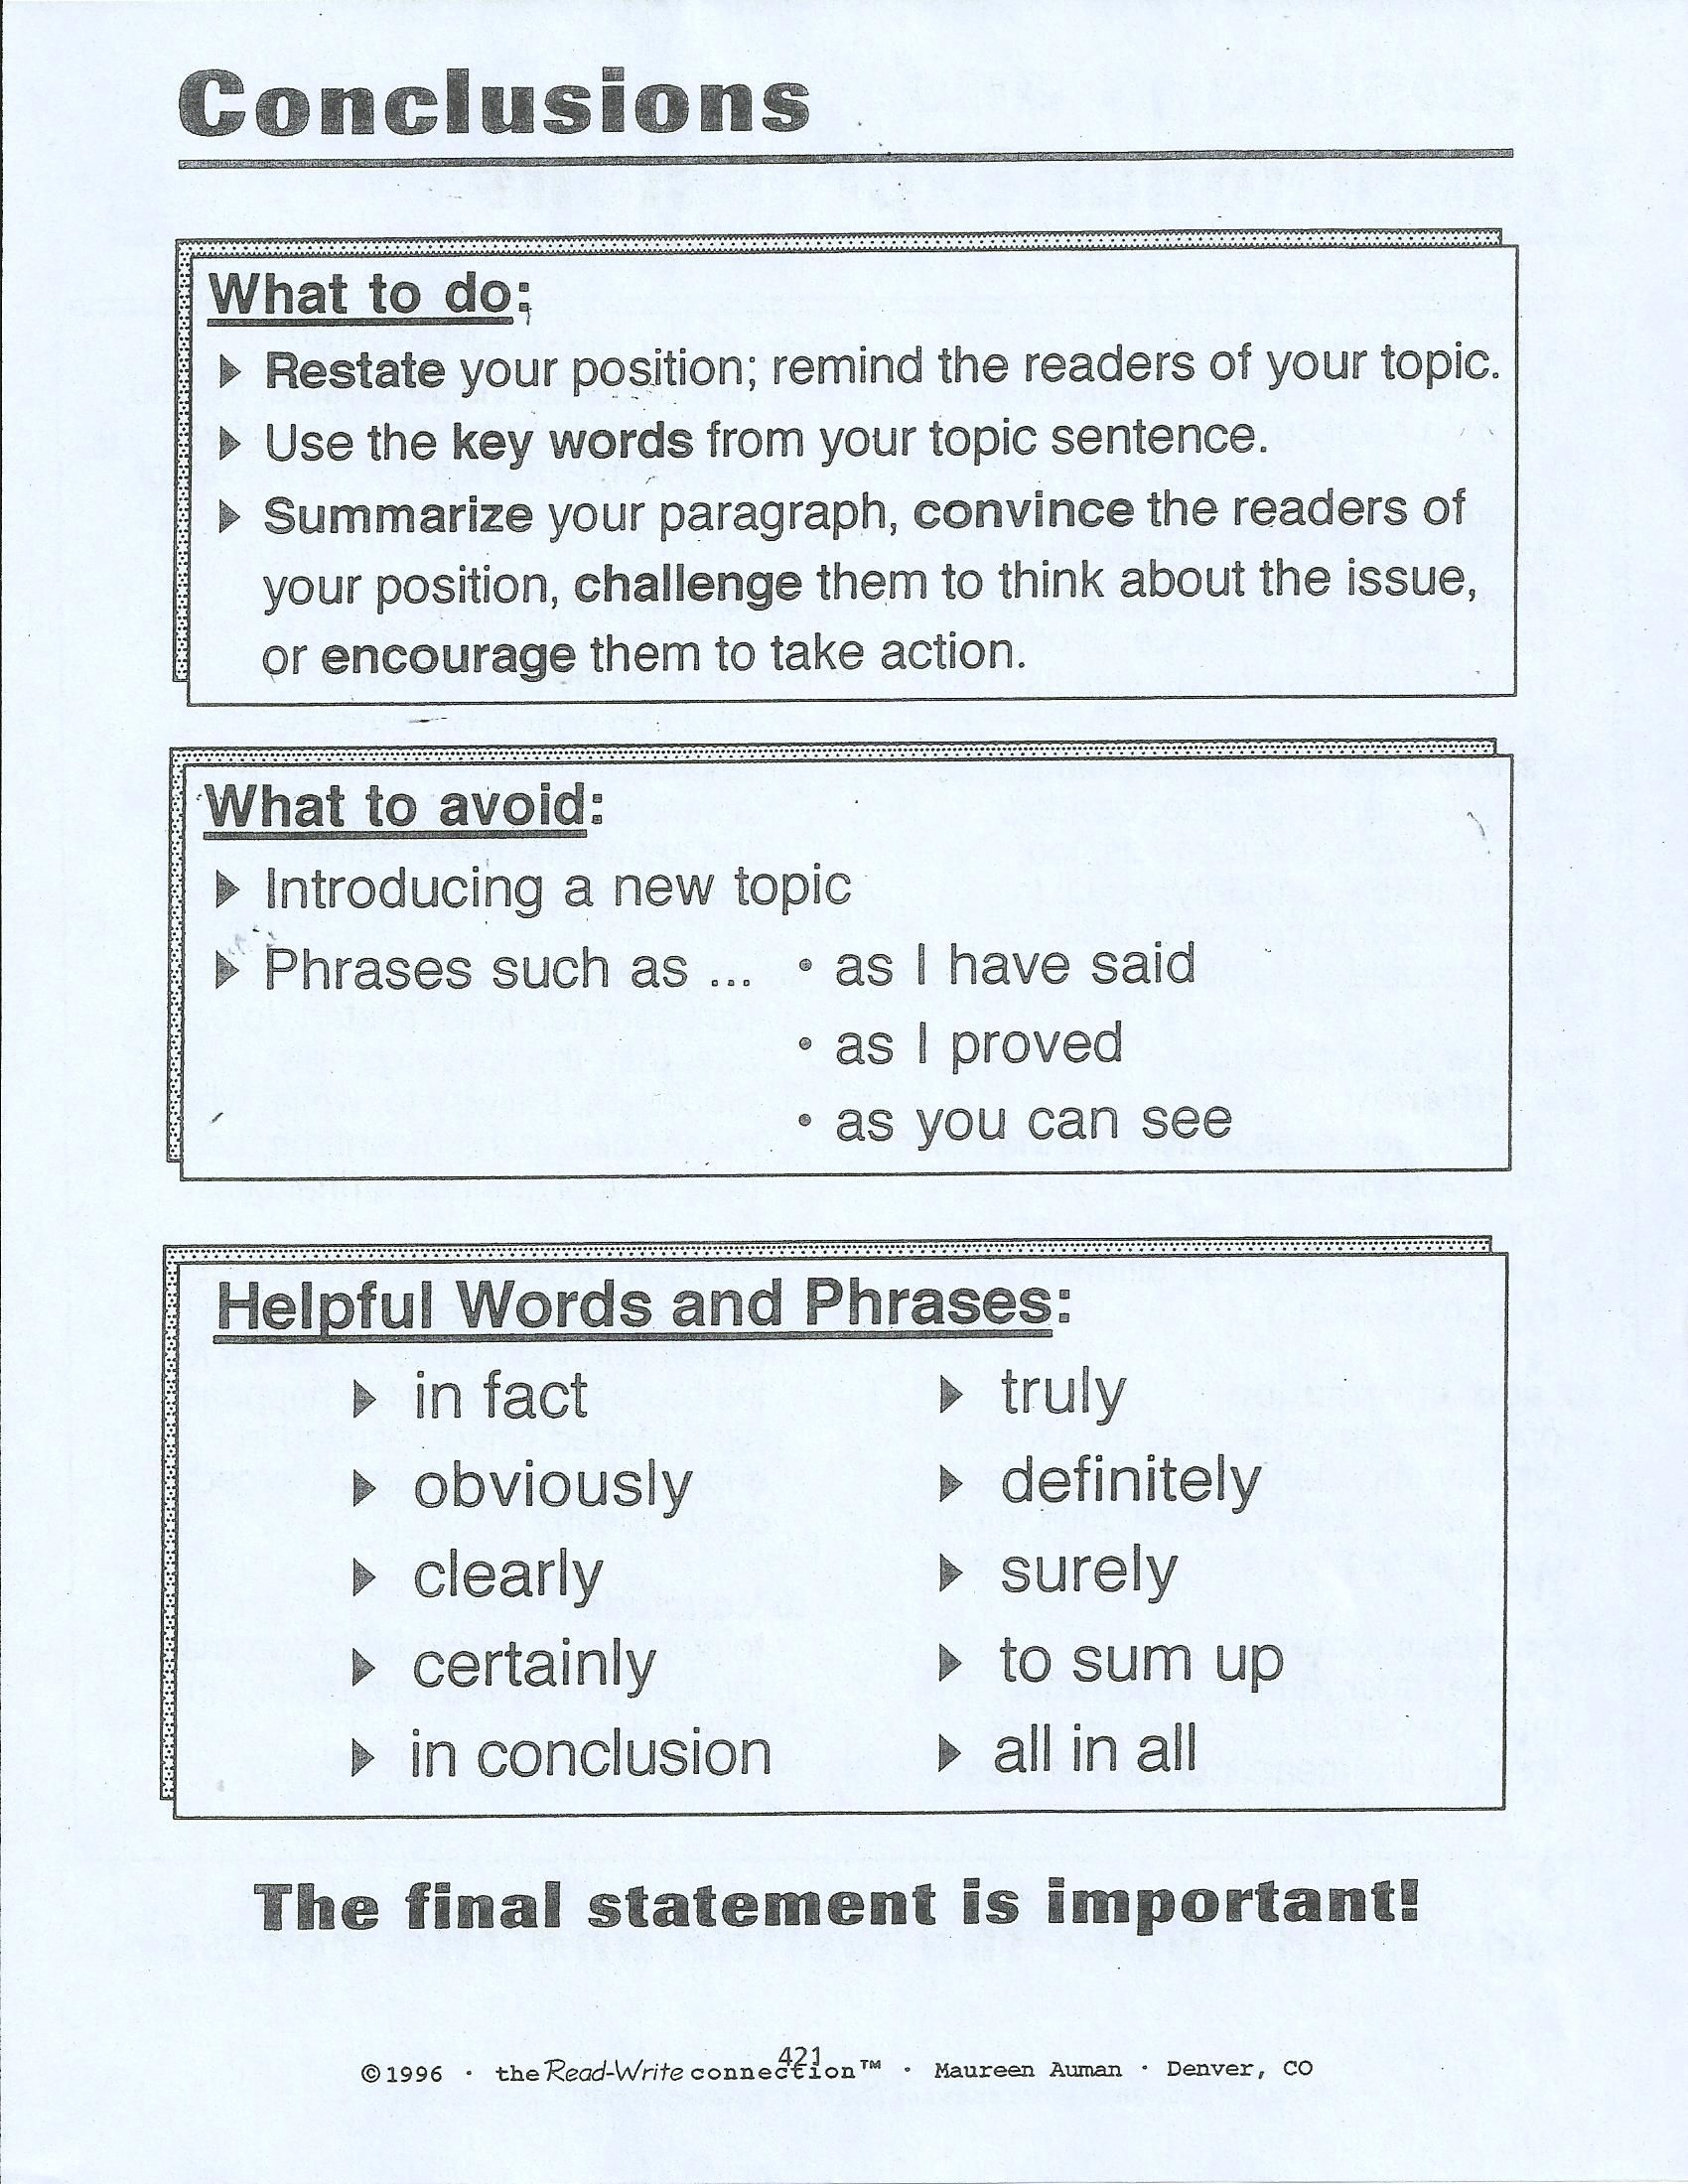 writing prompts for a paragraph would be great to print out cut some people it difficult to write a conclusion for their paper this summarizes what to do what to avoid and words that can help build up a strong